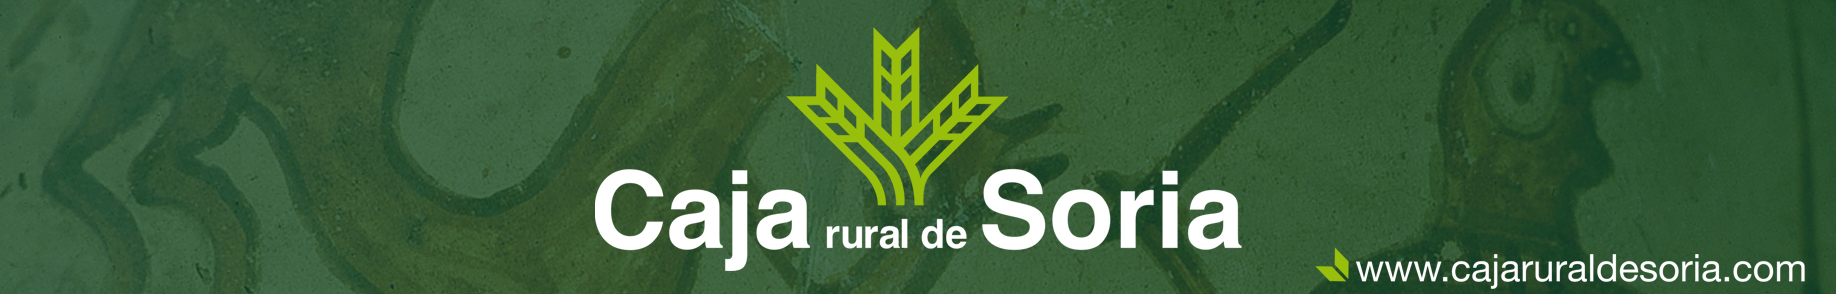 Publicidad Caja Rural de Soria, Banner inferior